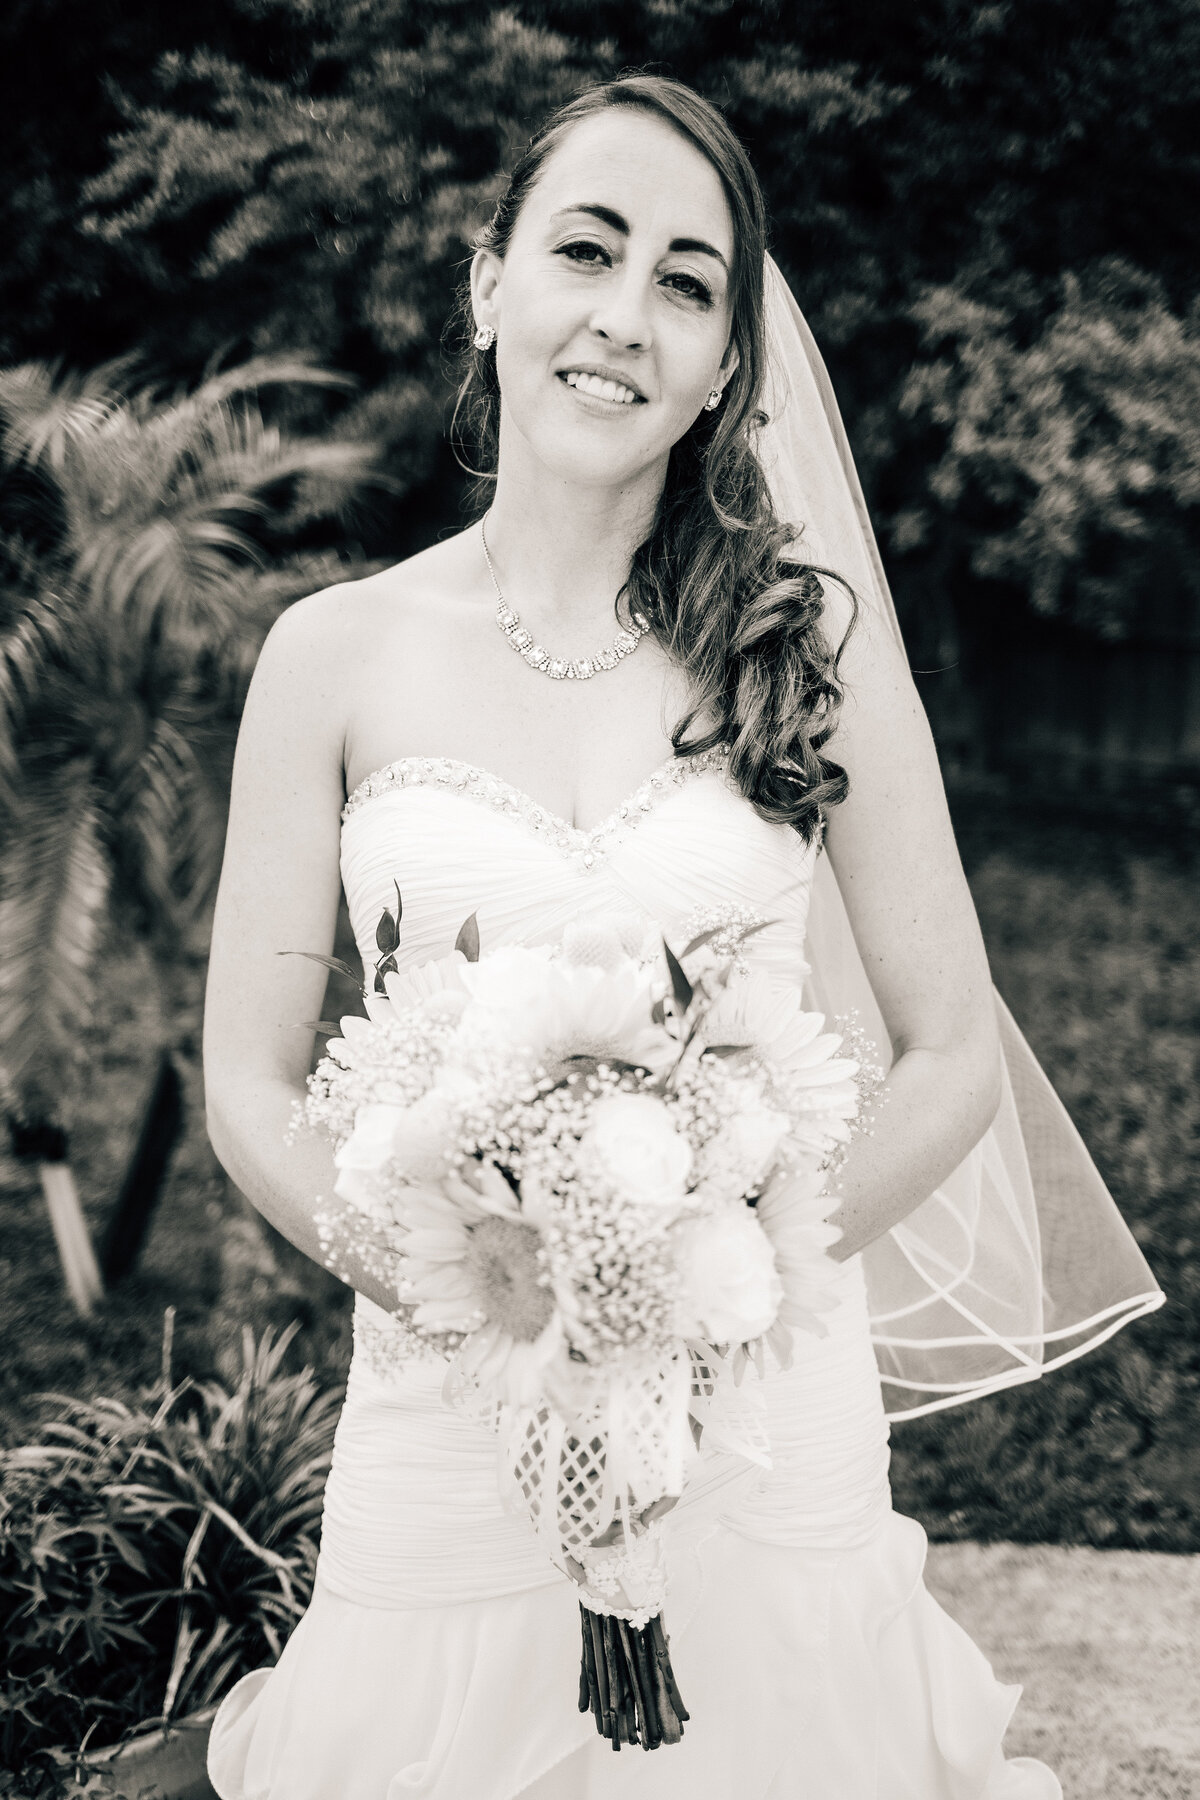 Kimberly_Hoyle_Photography_Marrero_Millikens_Reef_Wedding-30